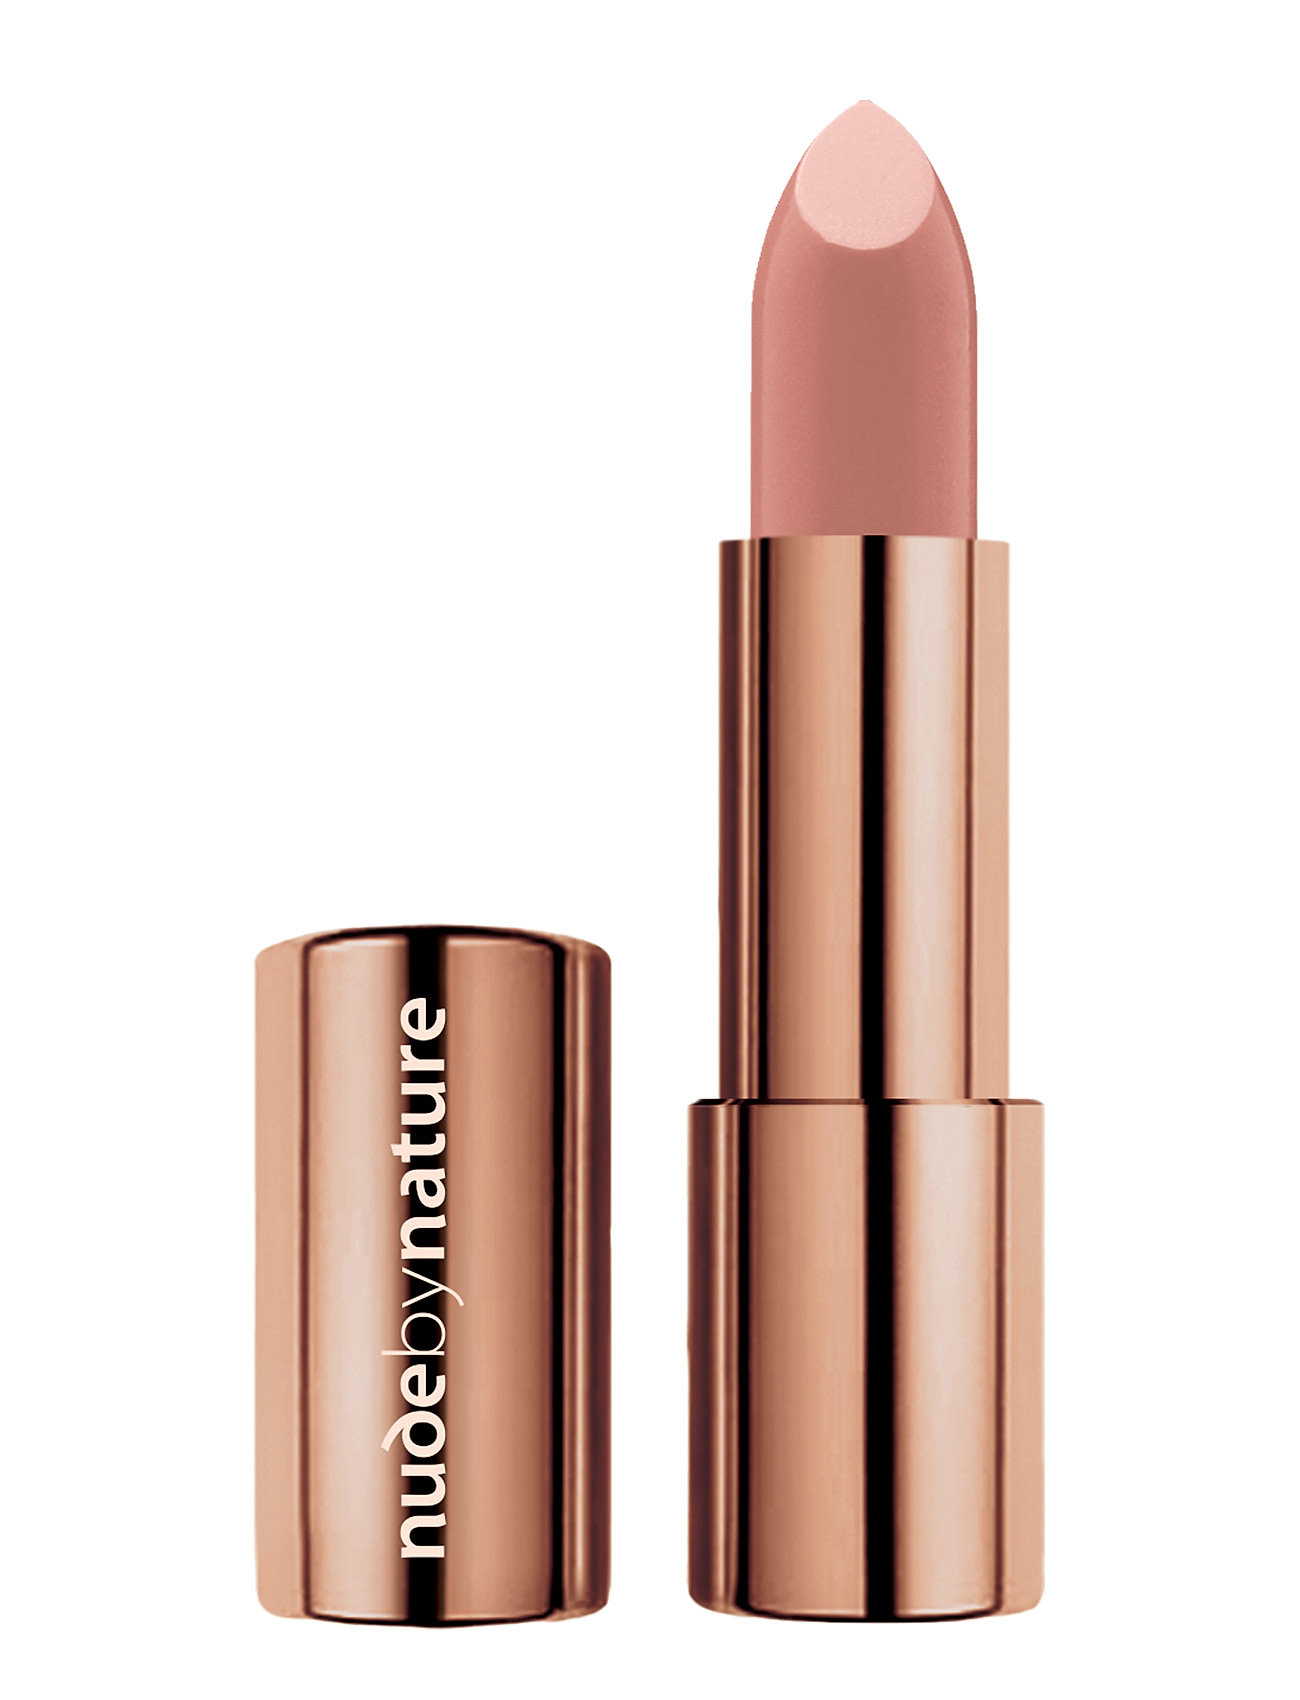 Image of Moisture Shine Lipstick Nude 02 Læbestift Makeup Nude By Nature (3406158443)